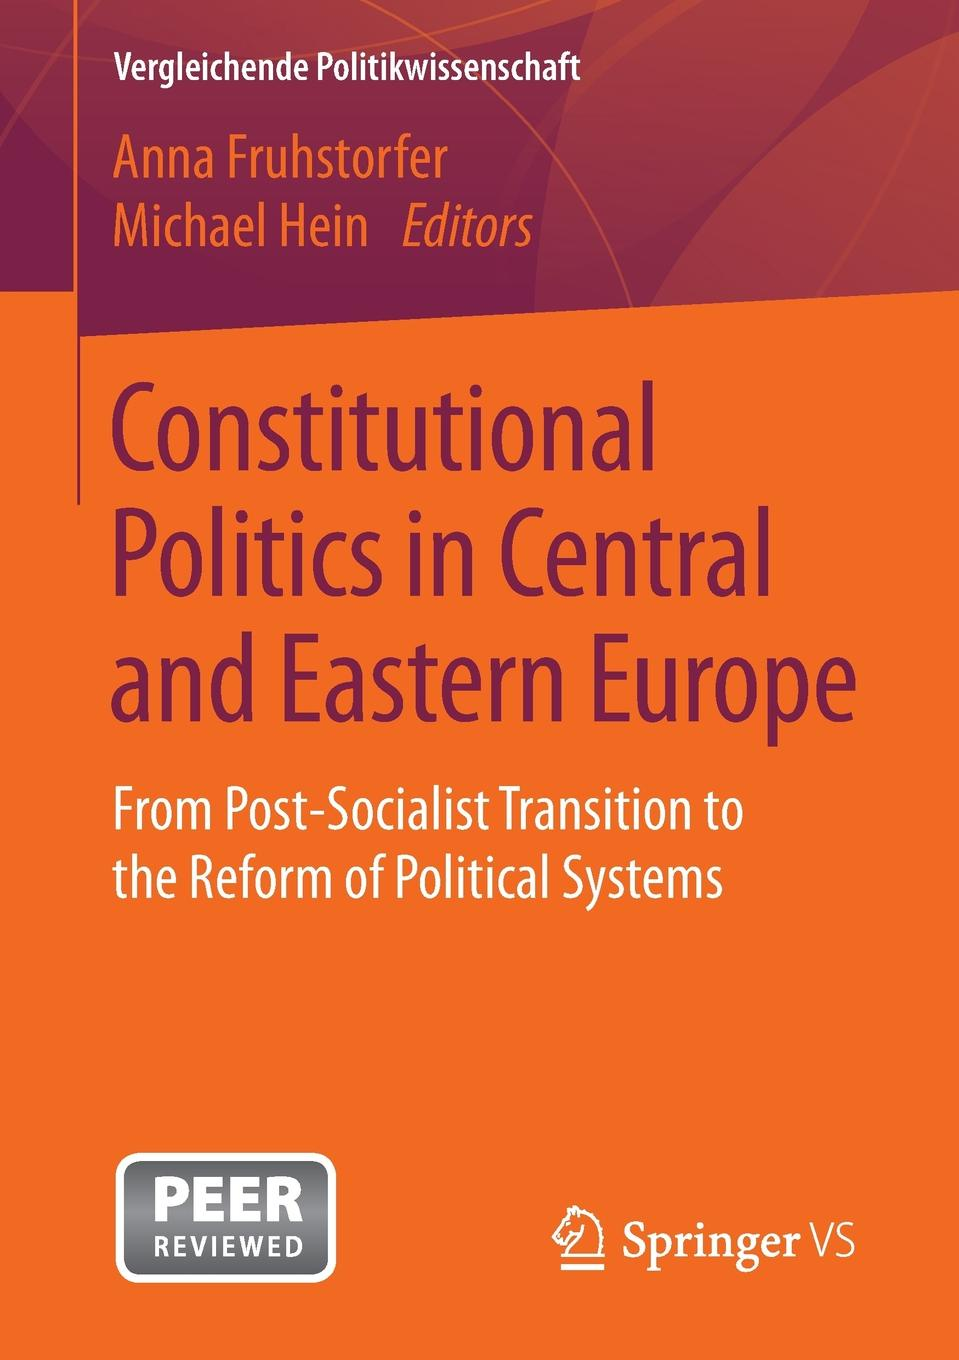 Constitutional Politics in Central and Eastern Europe. From Post-Socialist Transition to the Reform of Political Systems gordon peery f the post reform guide to derivatives and futures isbn 9781118205402